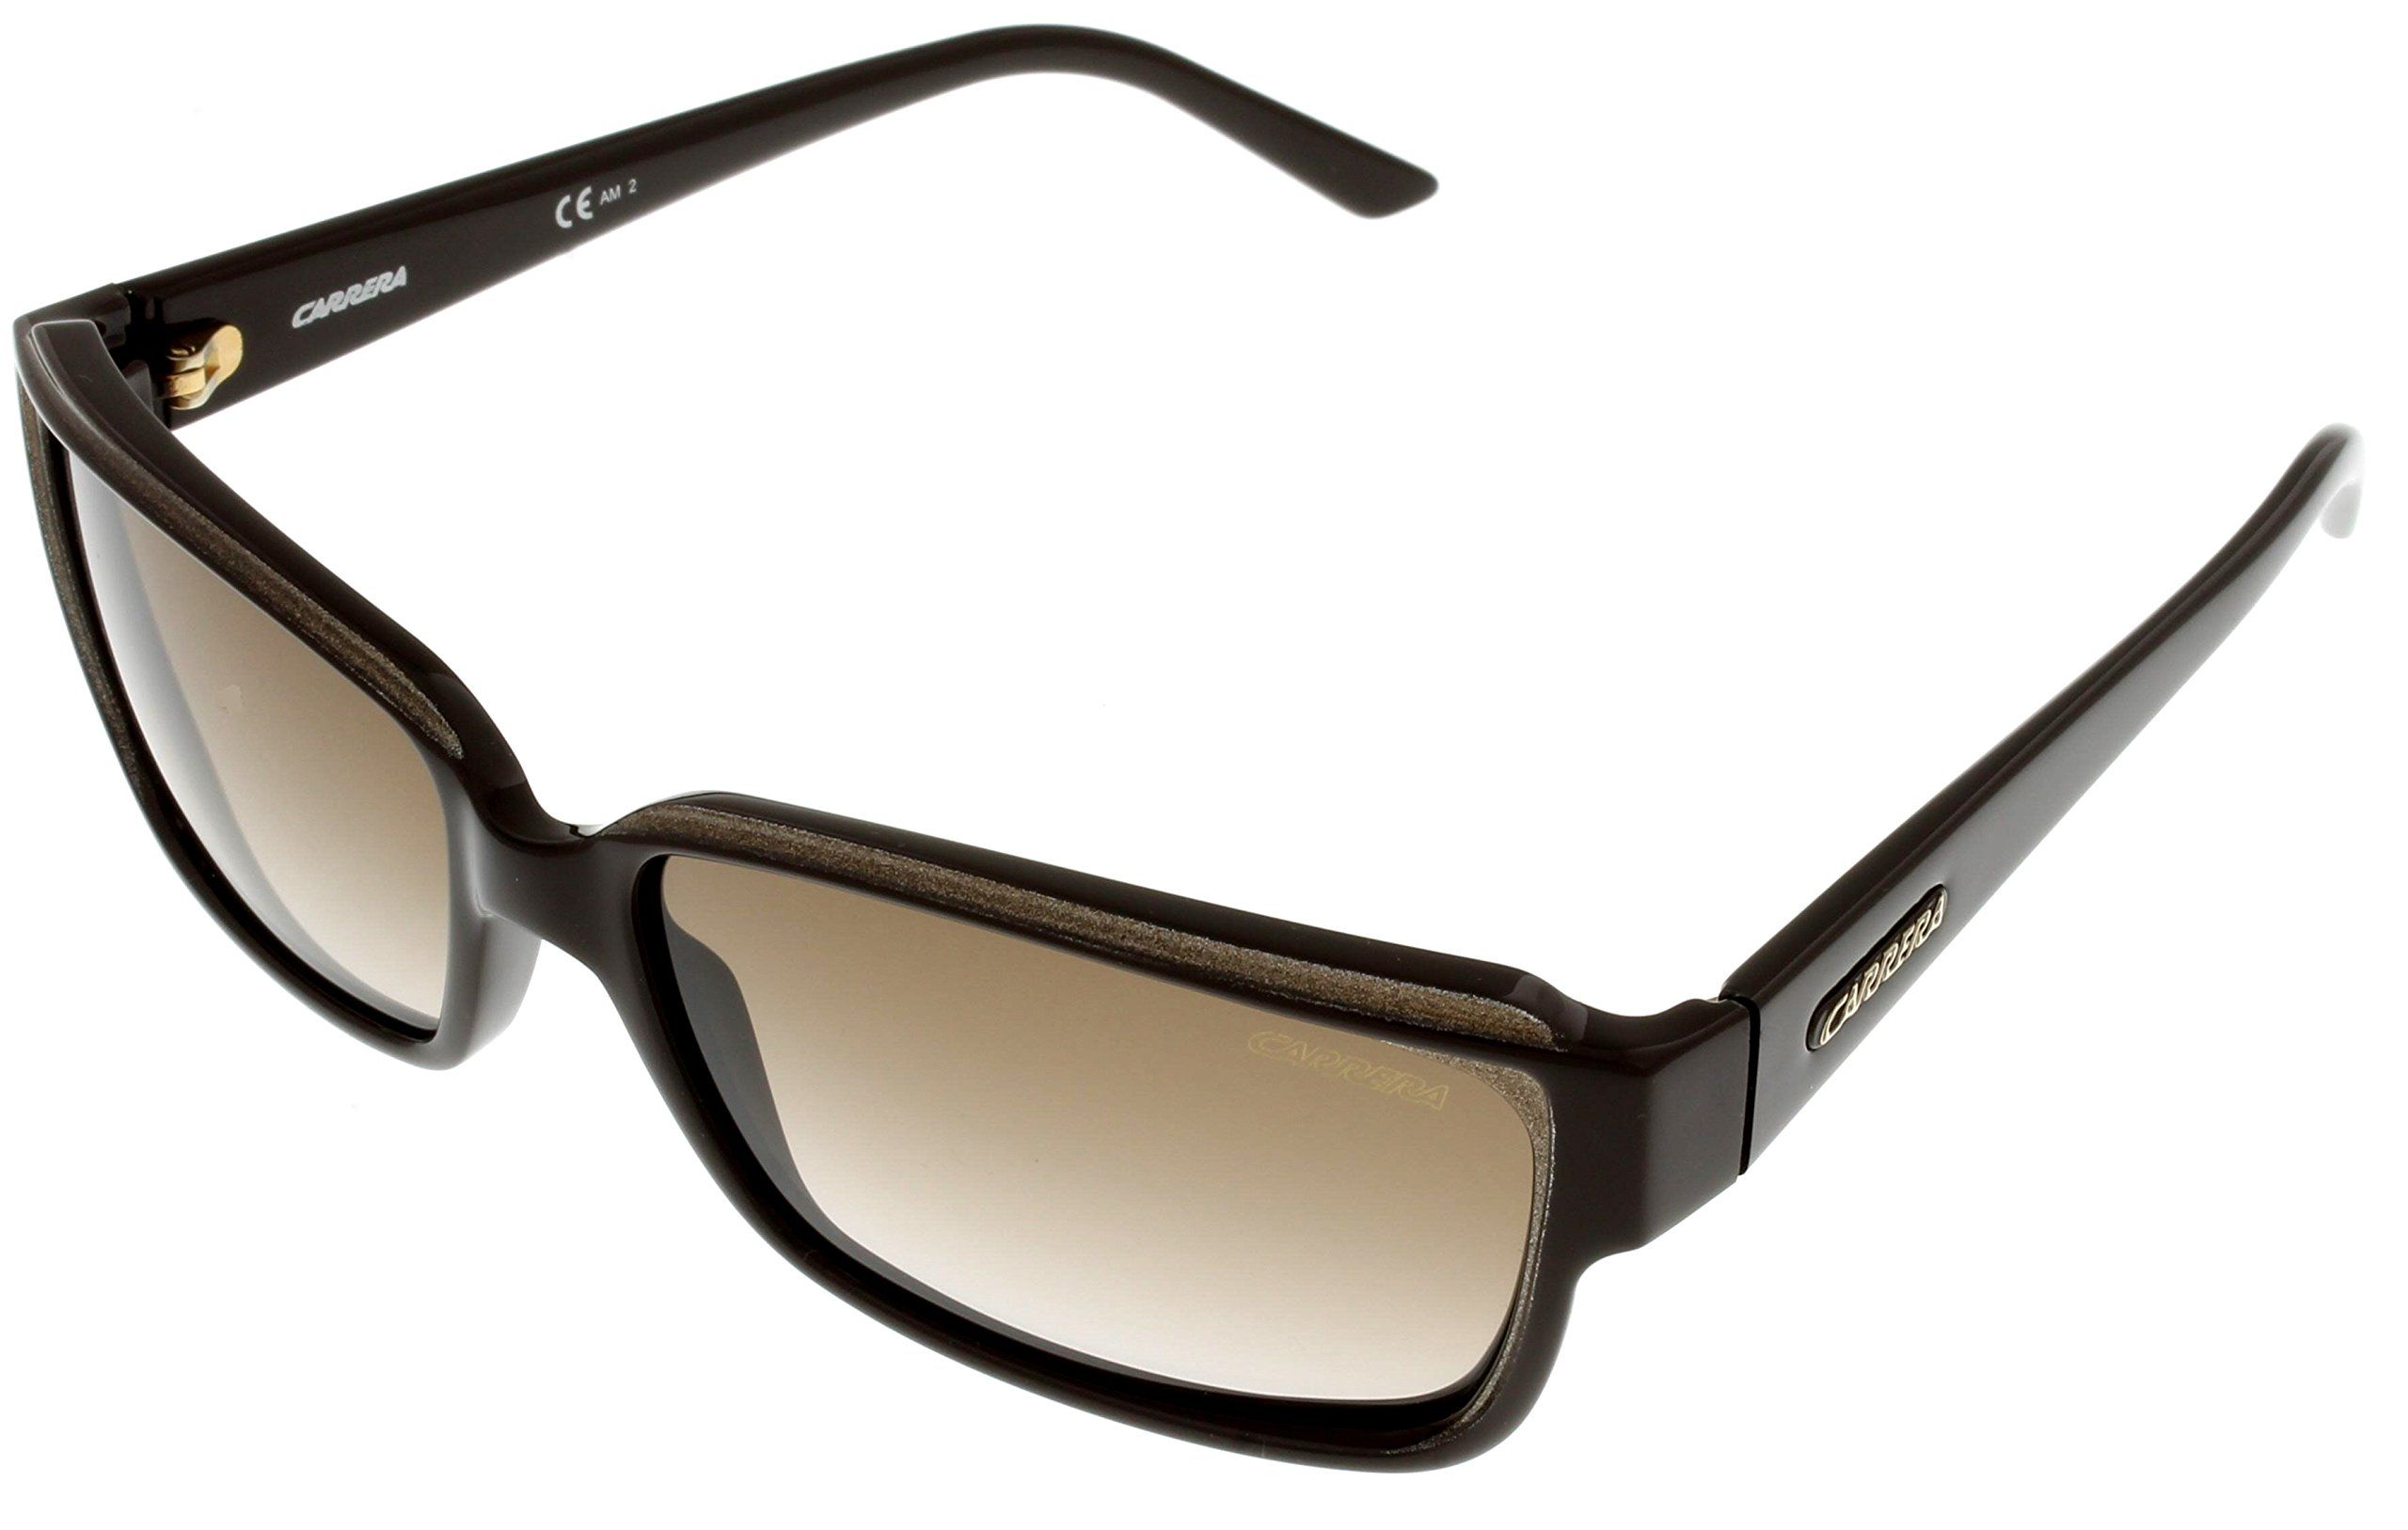 Carrera Sunglasses Womens CARLA 31581 Brown. Frame Color:Brown. Lens Color: Brown Gradient. Gender:Unisex. Case Included.